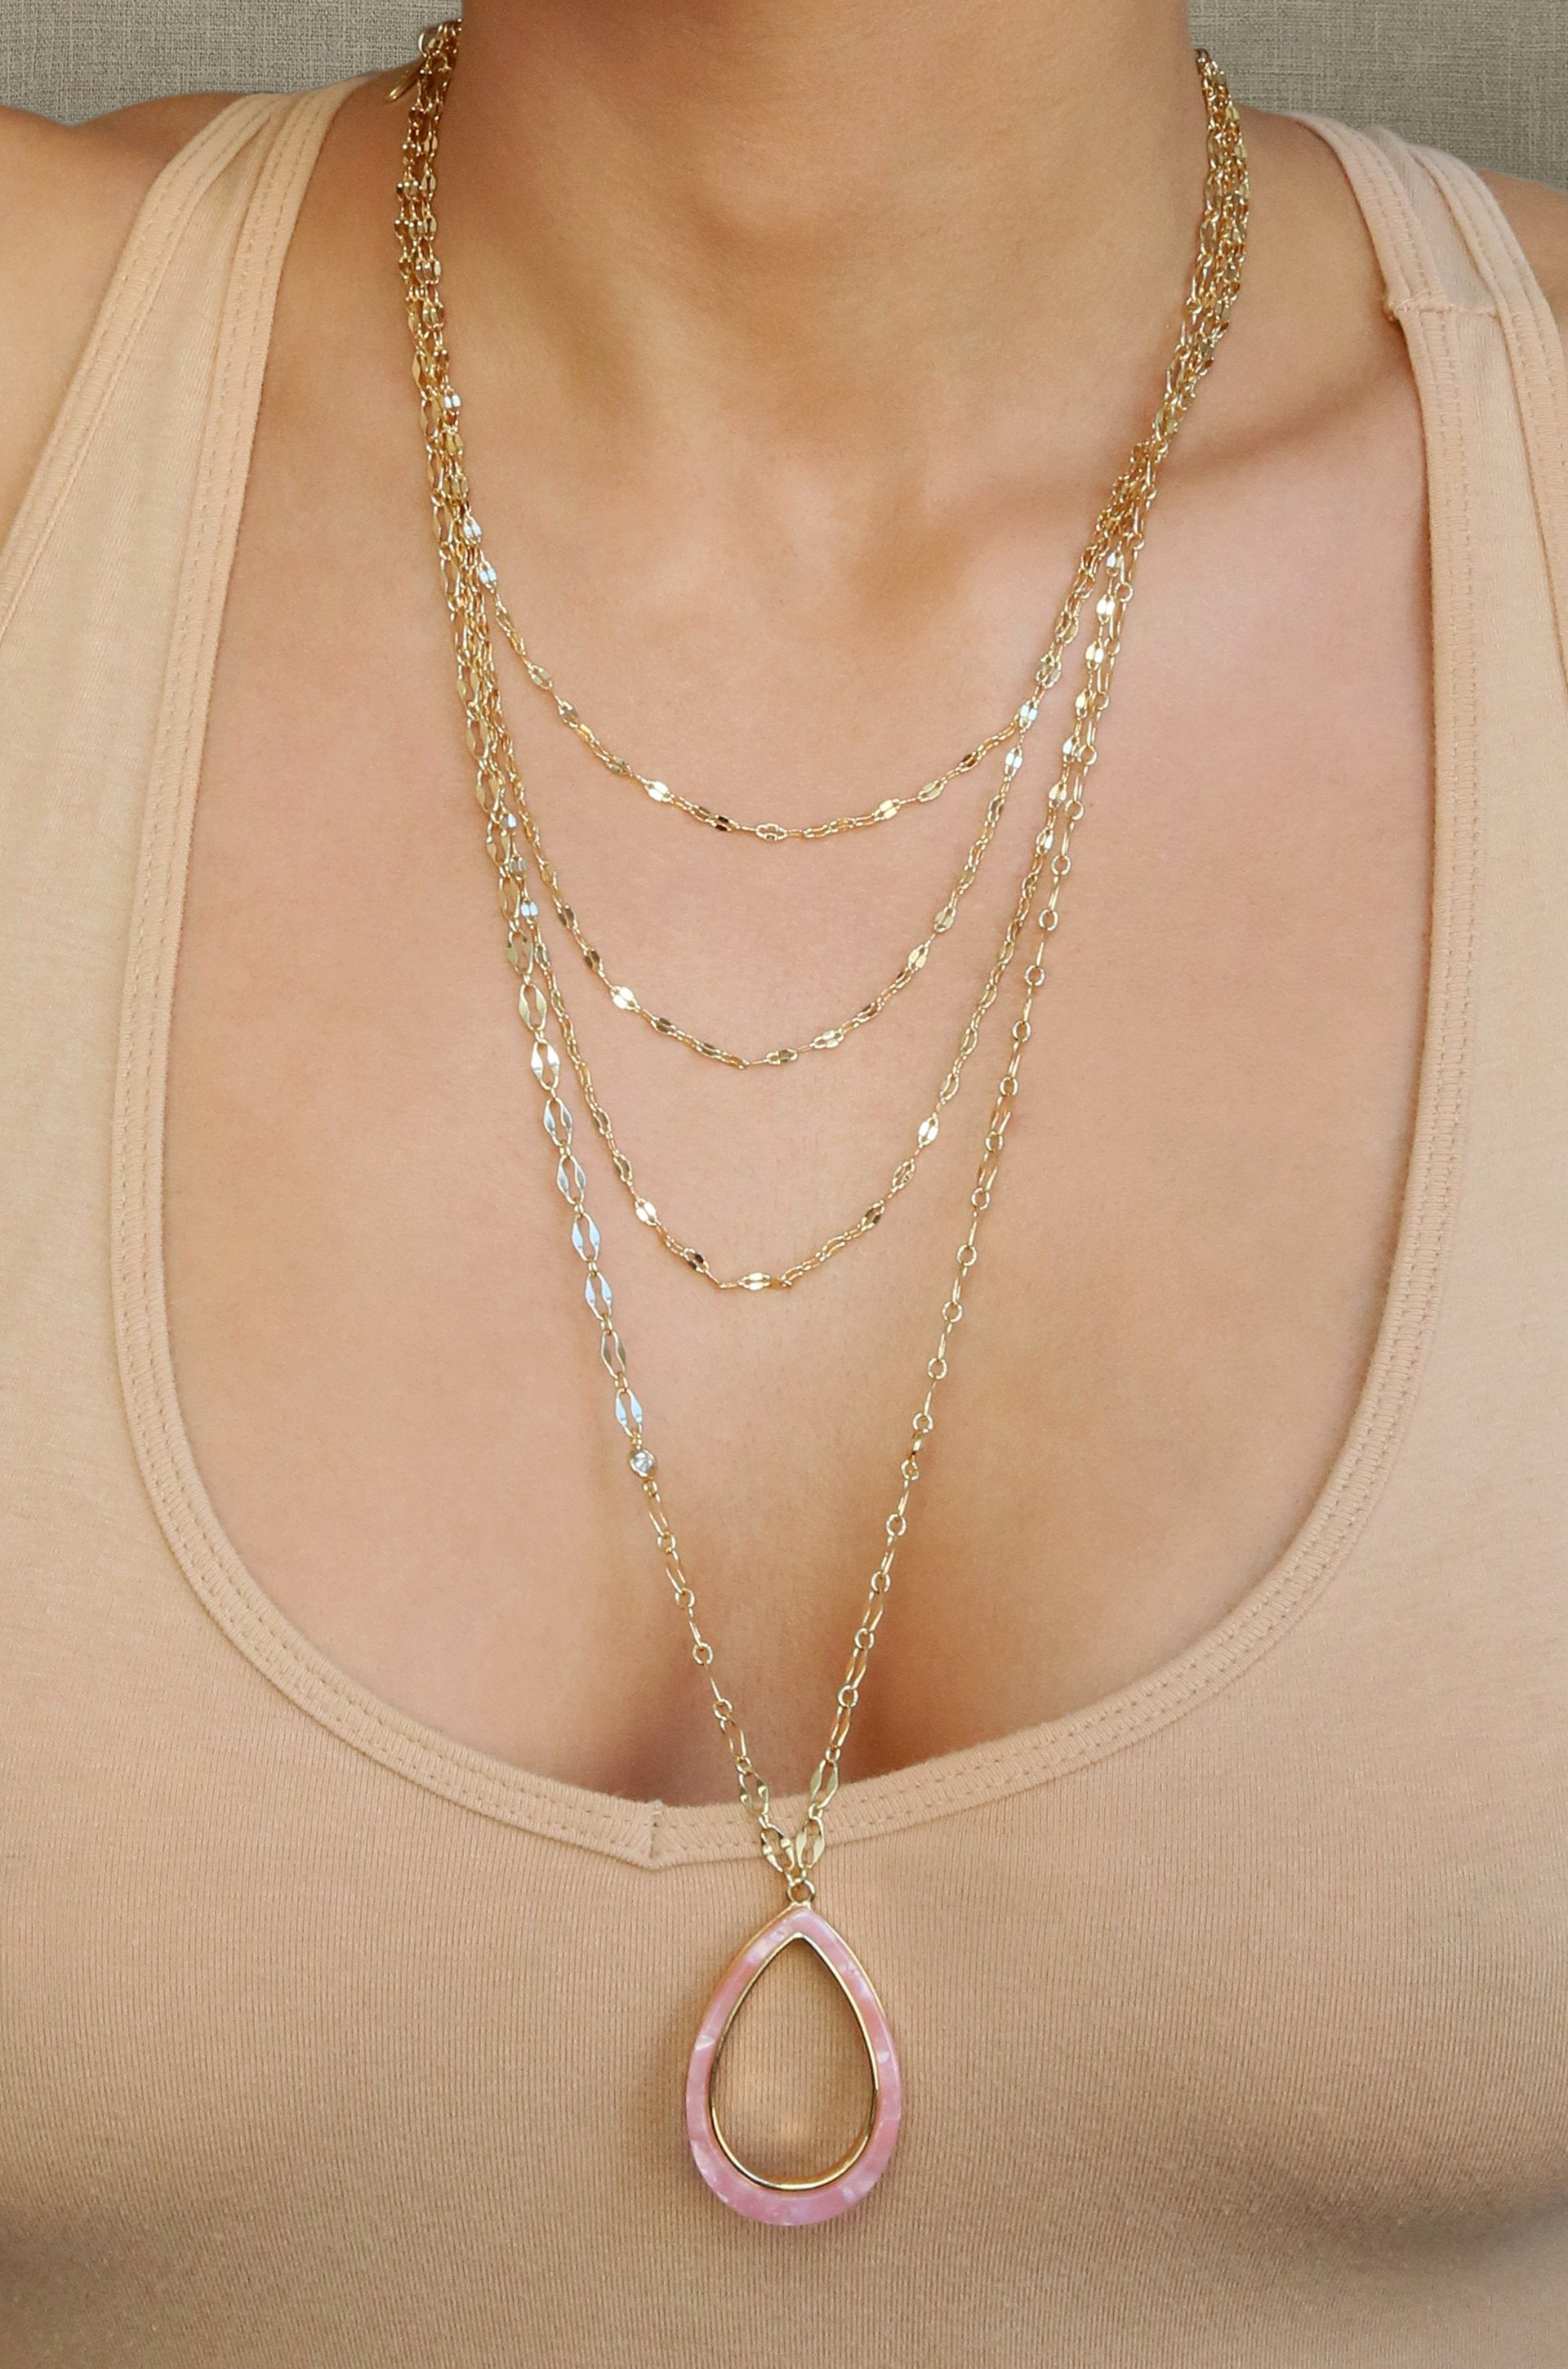 Simply Chic Teardrop Pink Resin and 18k Gold Plated Layered Necklace